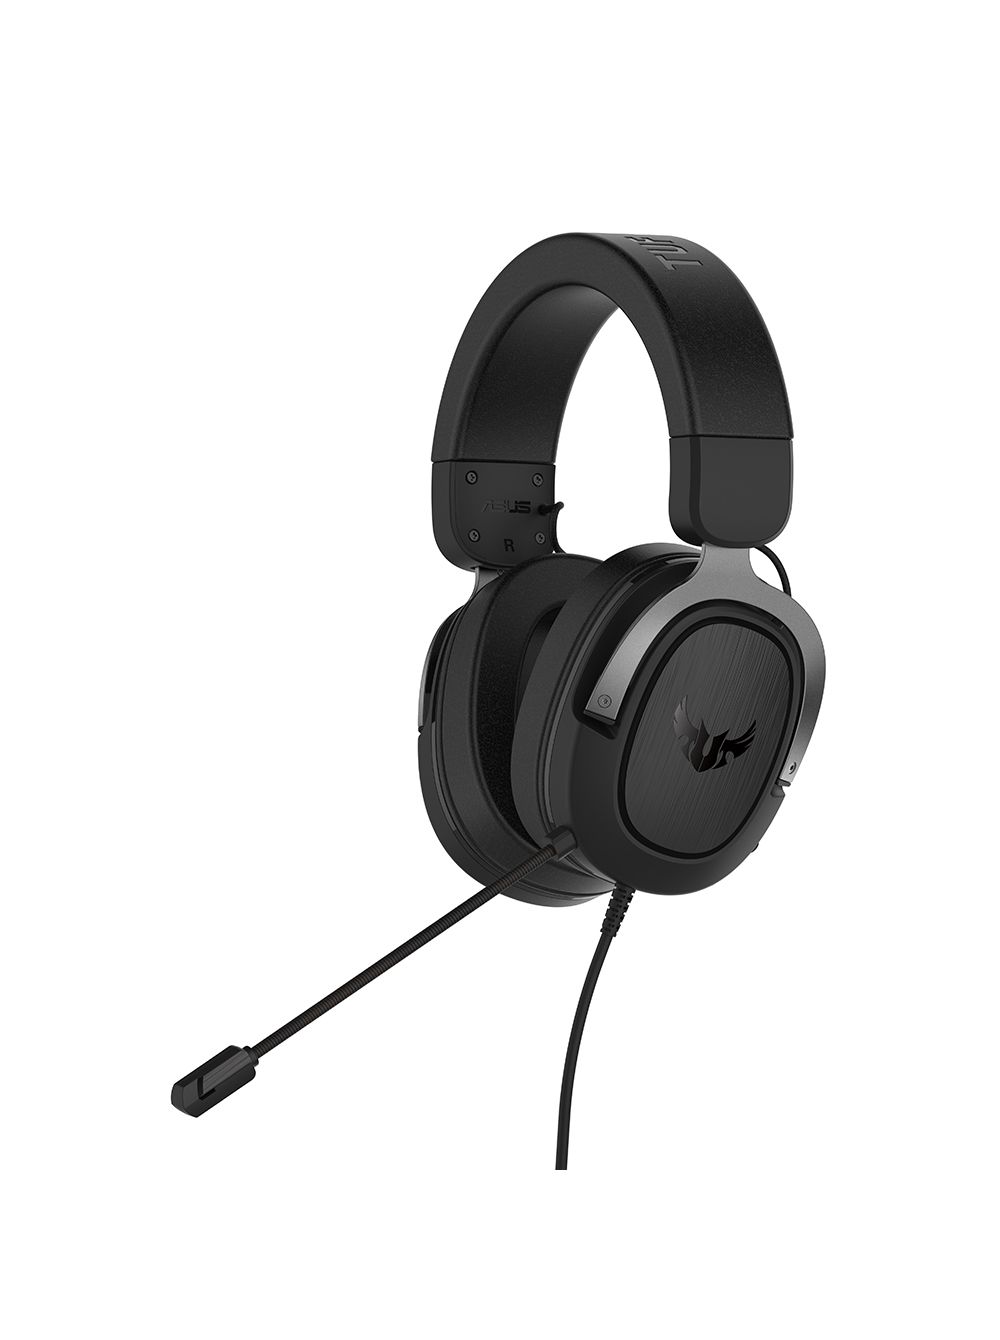 ASUS TUF Gaming H3 Headset Head-band 3.5 mm connector Black, Grey